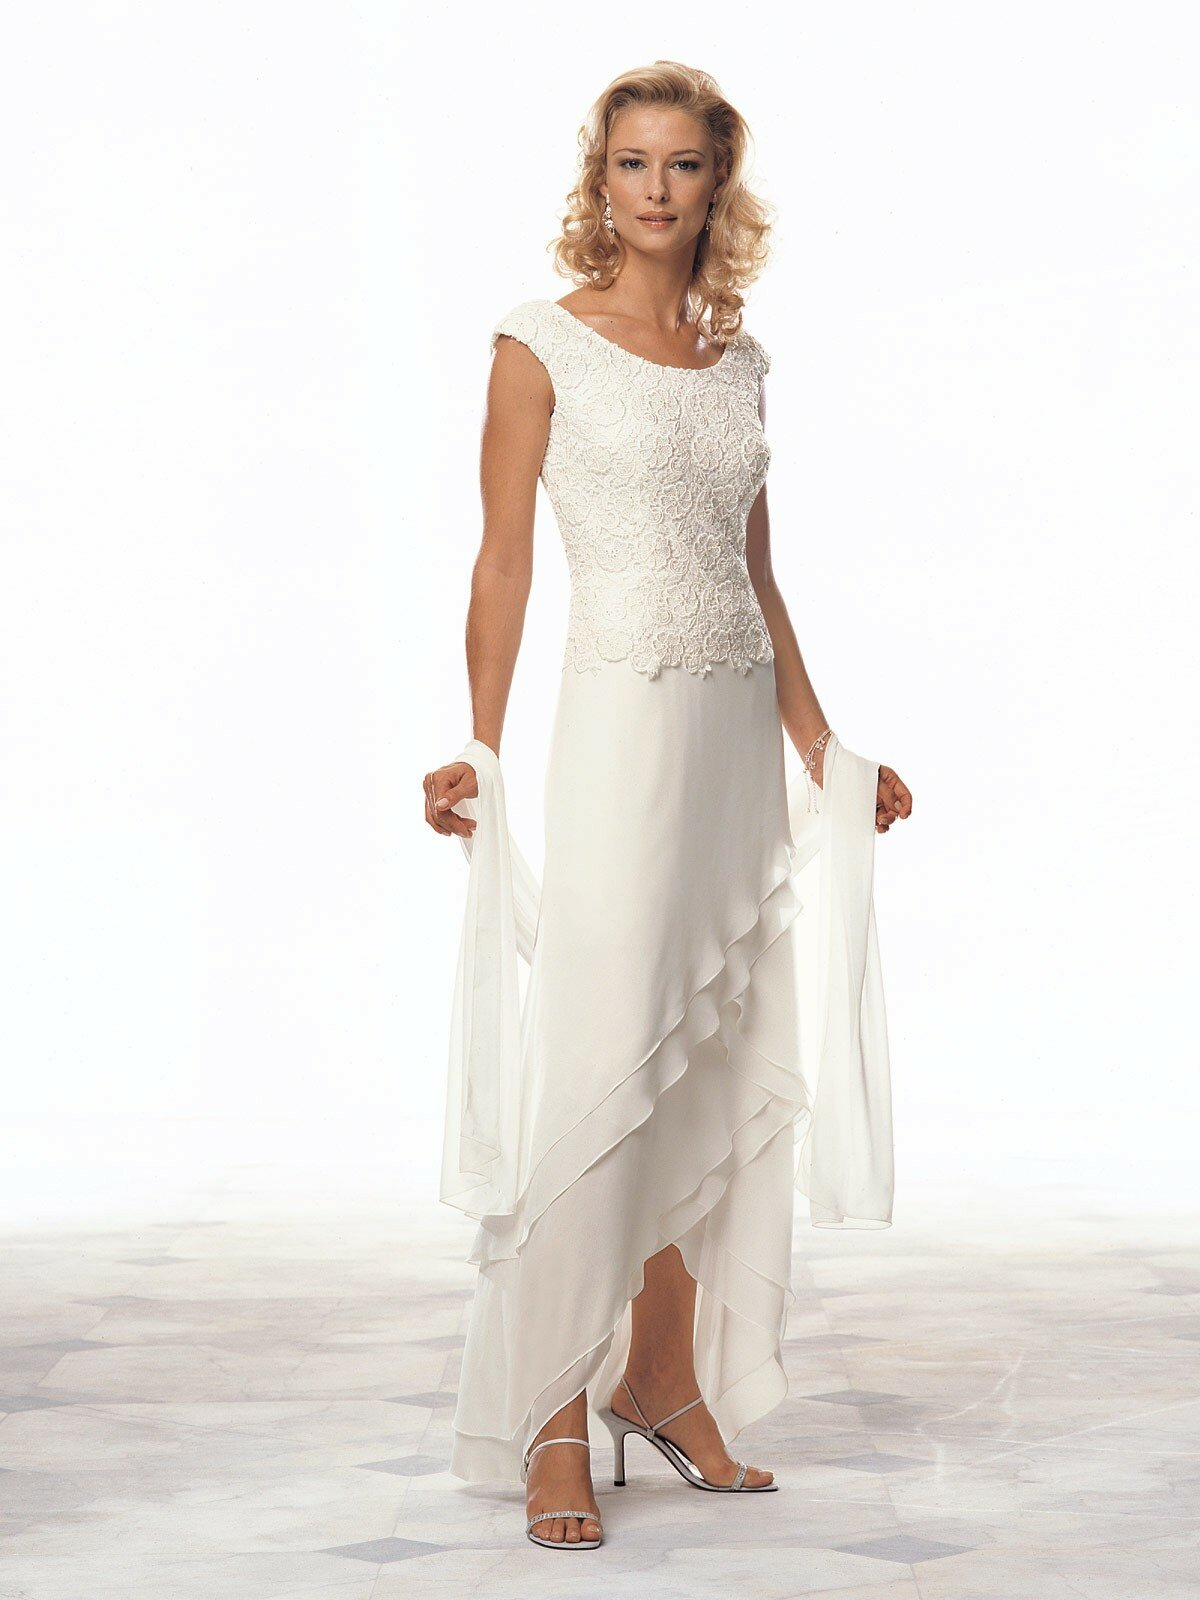 Outdoor Wedding Dresses For Mother Of The Groom Photo 1